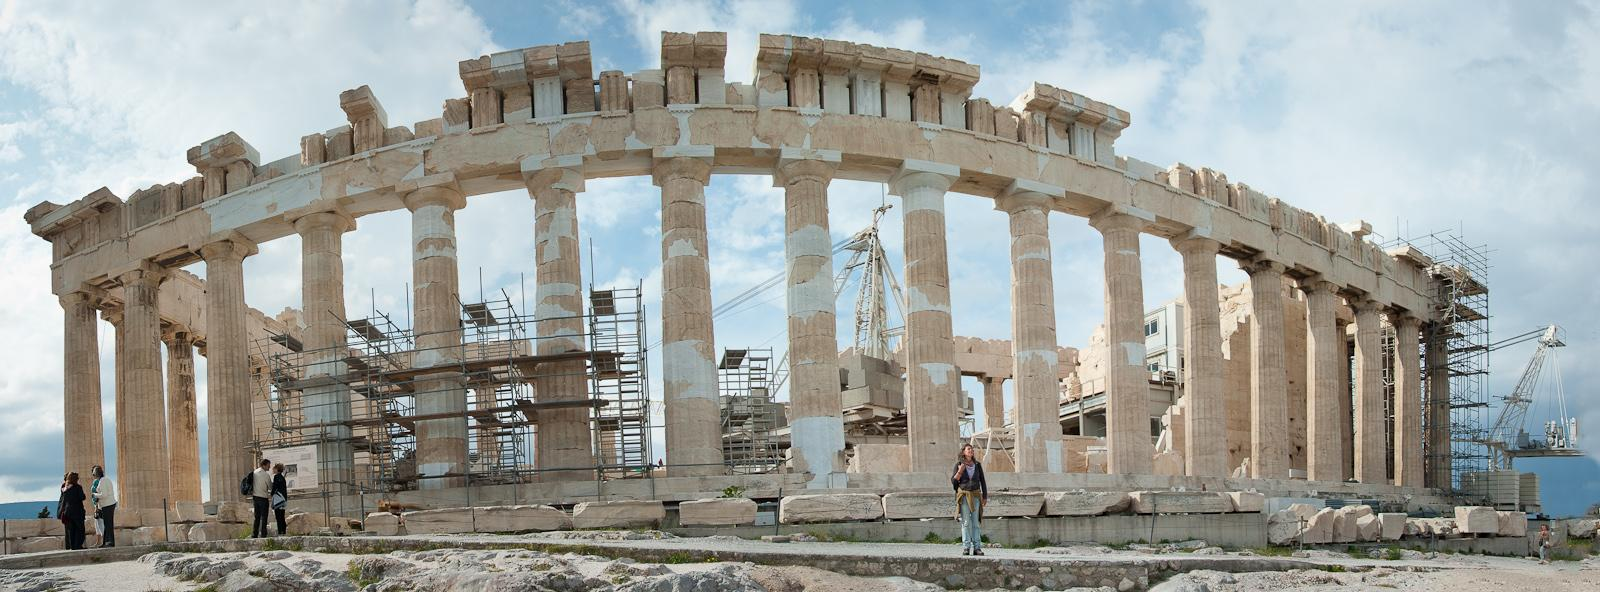 The Parthenon - deconstructed and reconstructed